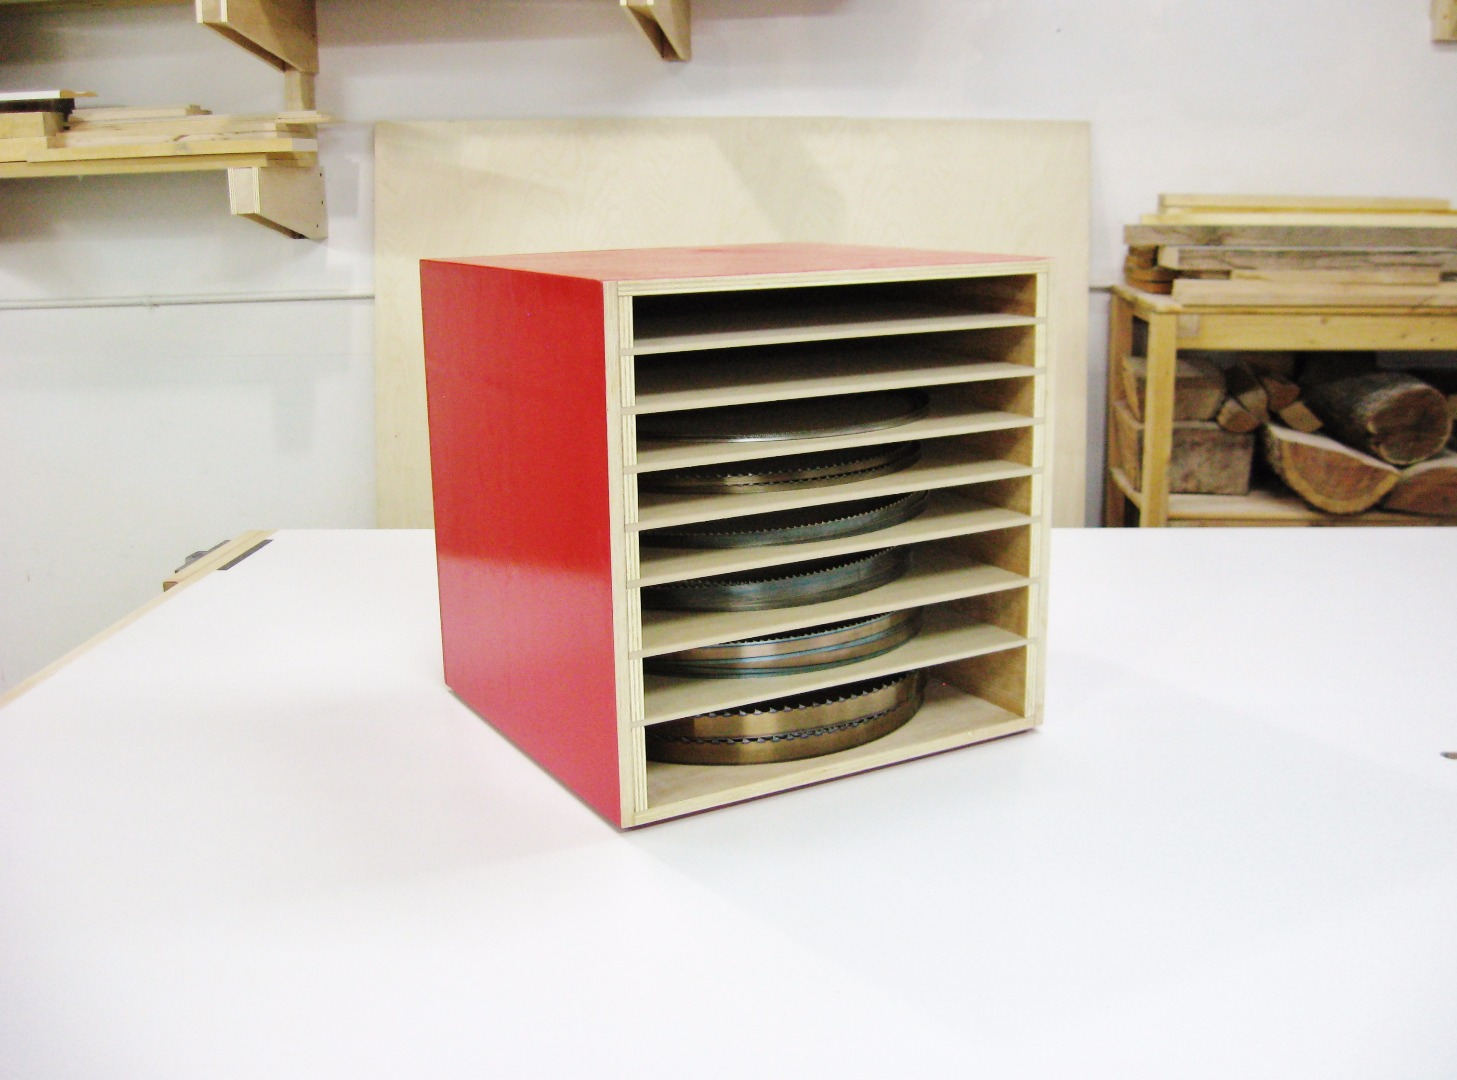 Picture of Bandsaw Blade Storage Box